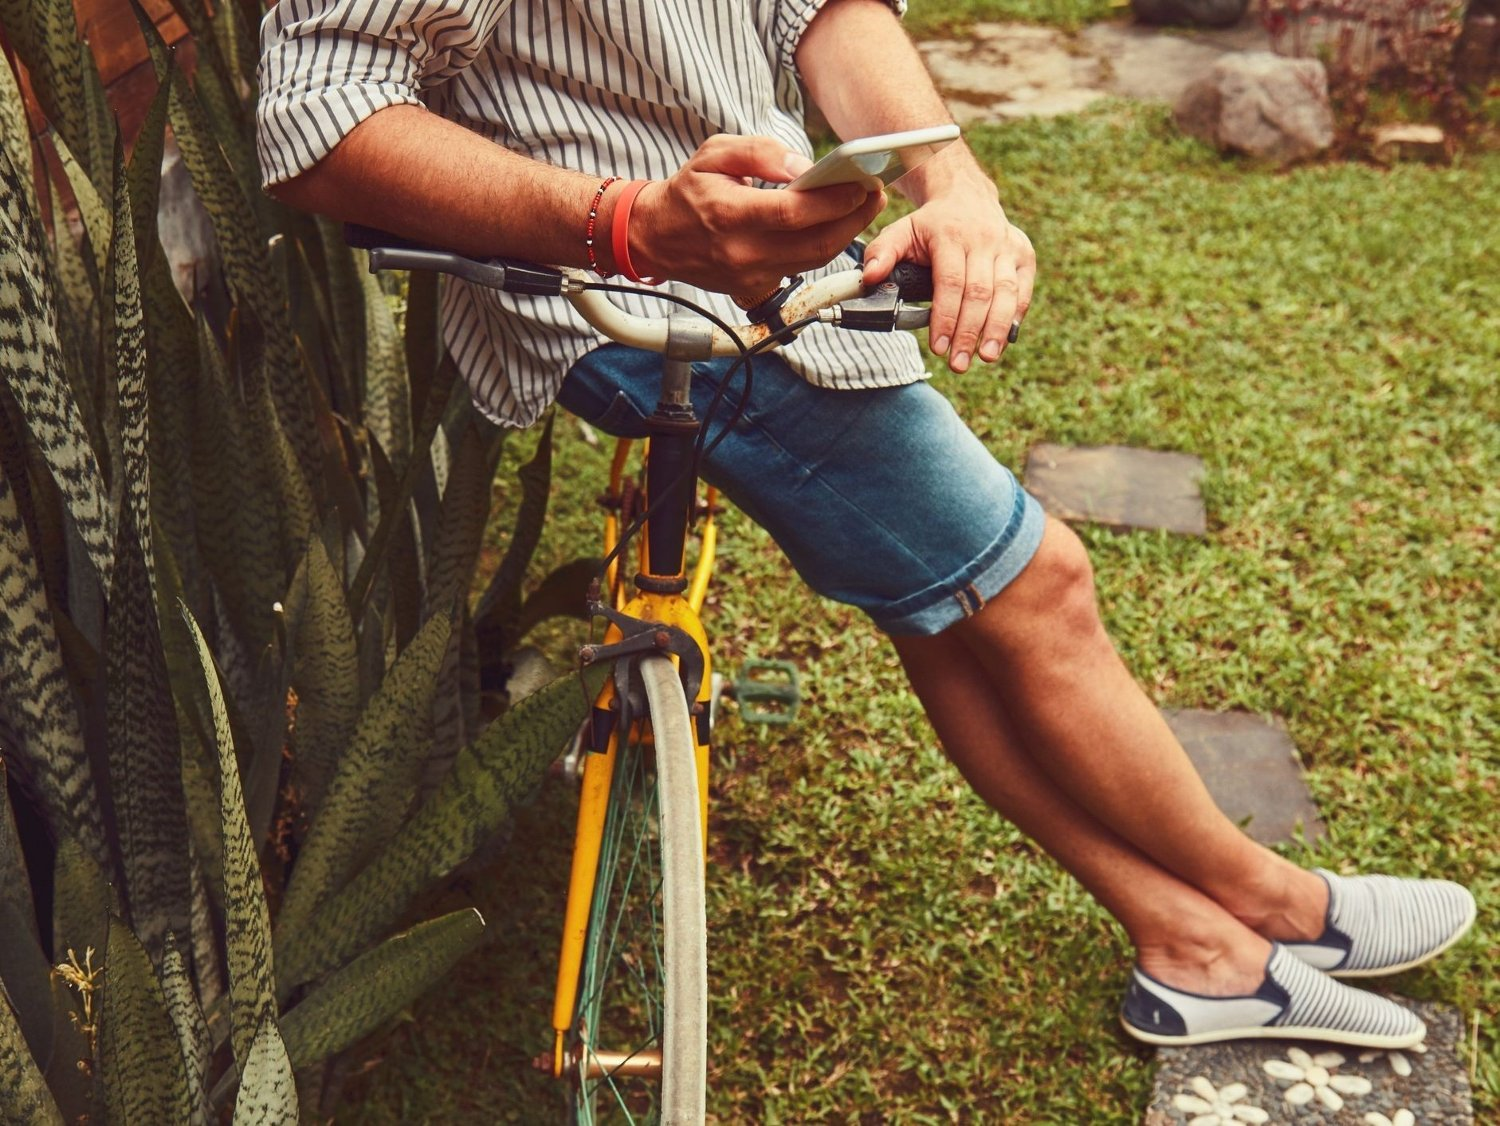 Modern man using cellphone while sitting on the grass with old bicycle. Modern man using cellphone while sitting on the grass with old bicycle.